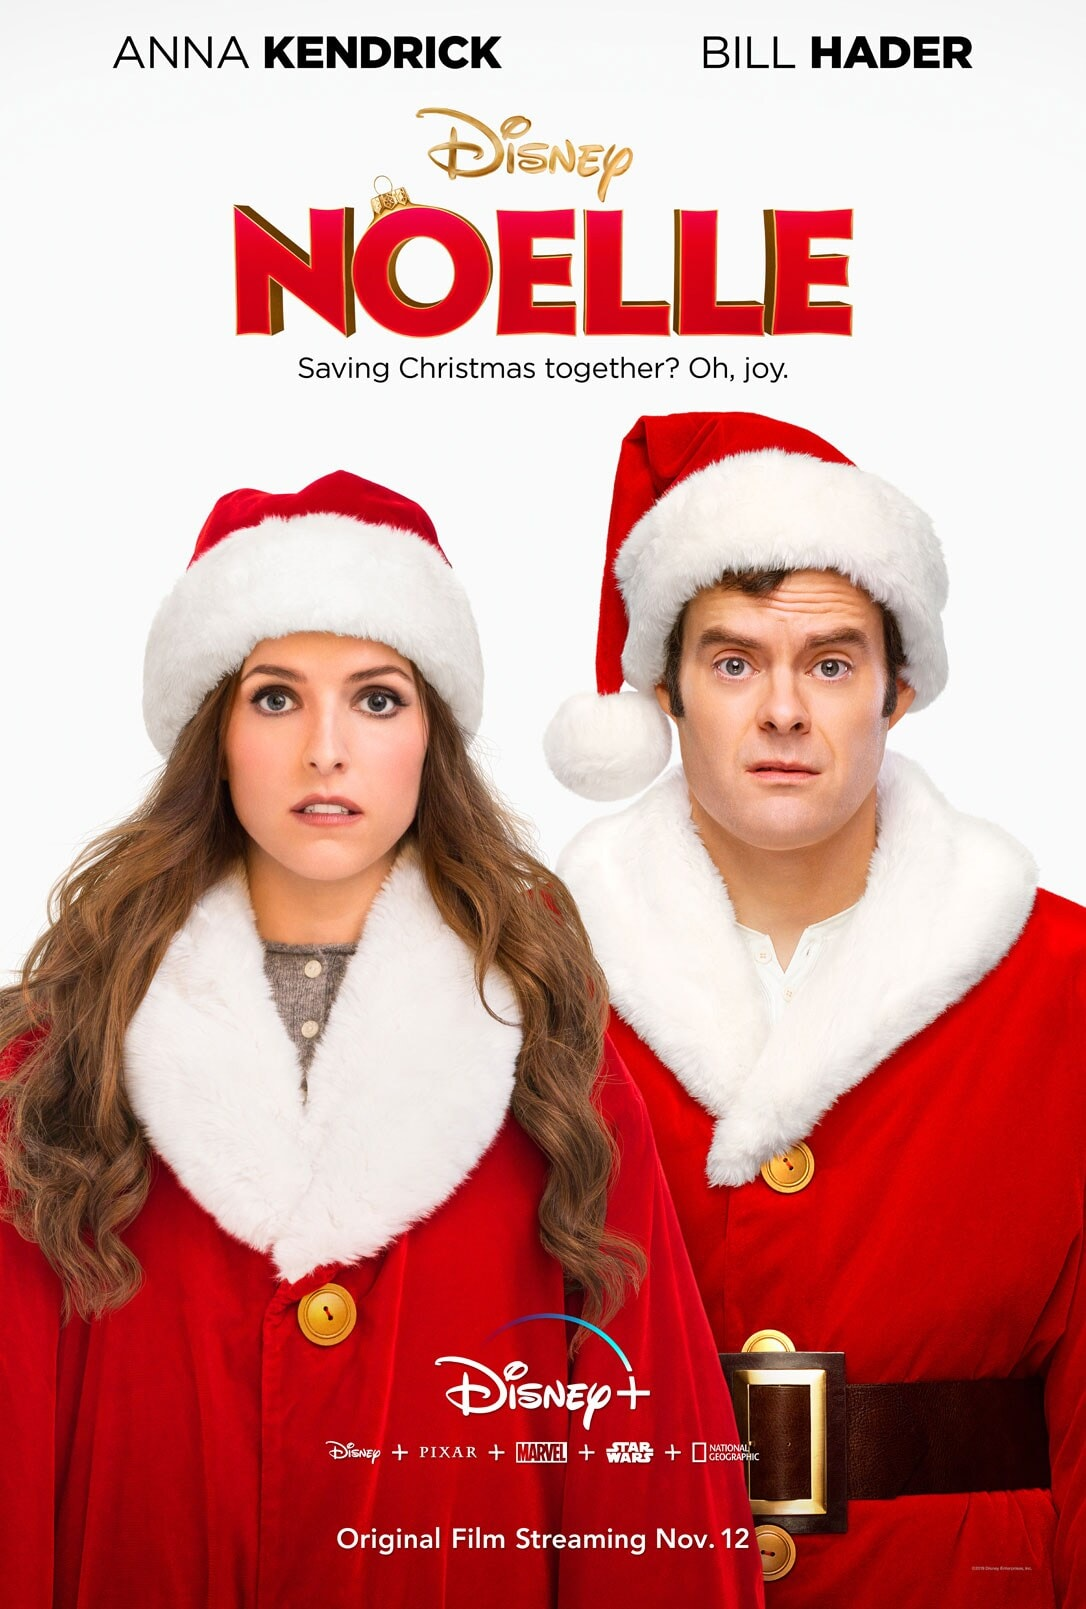 Anna Kendrick and Bill Hader in Noelle on Disney Plus, Disney plus Pixar plus Marvel plus Star Wars plus National Geographic, Original Film Streaming Nov. 12